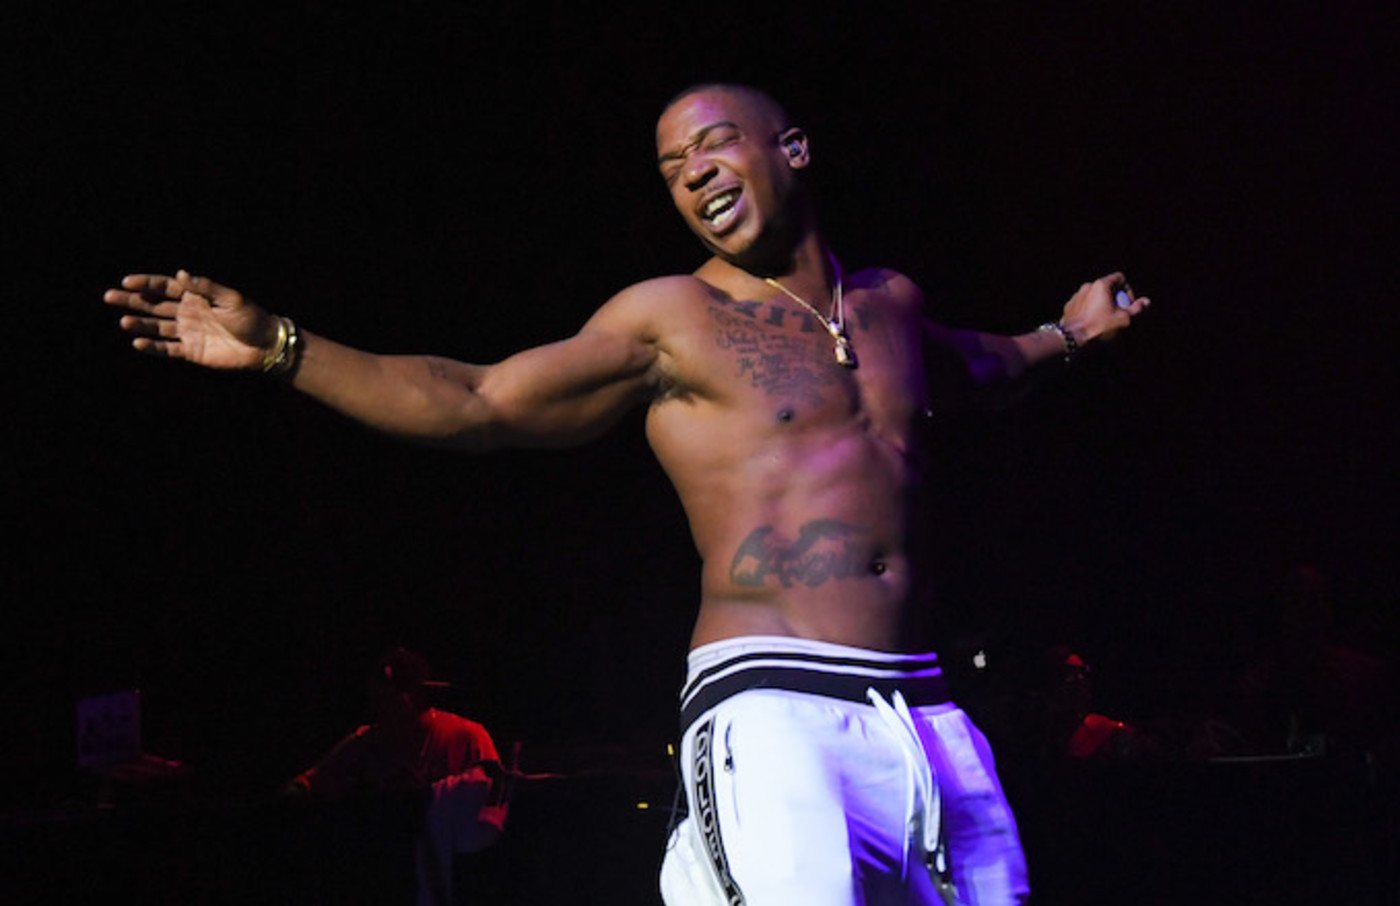 Ja Rule performs during Q 100.5's Nightmare on Q Street at the Orleans Arena.